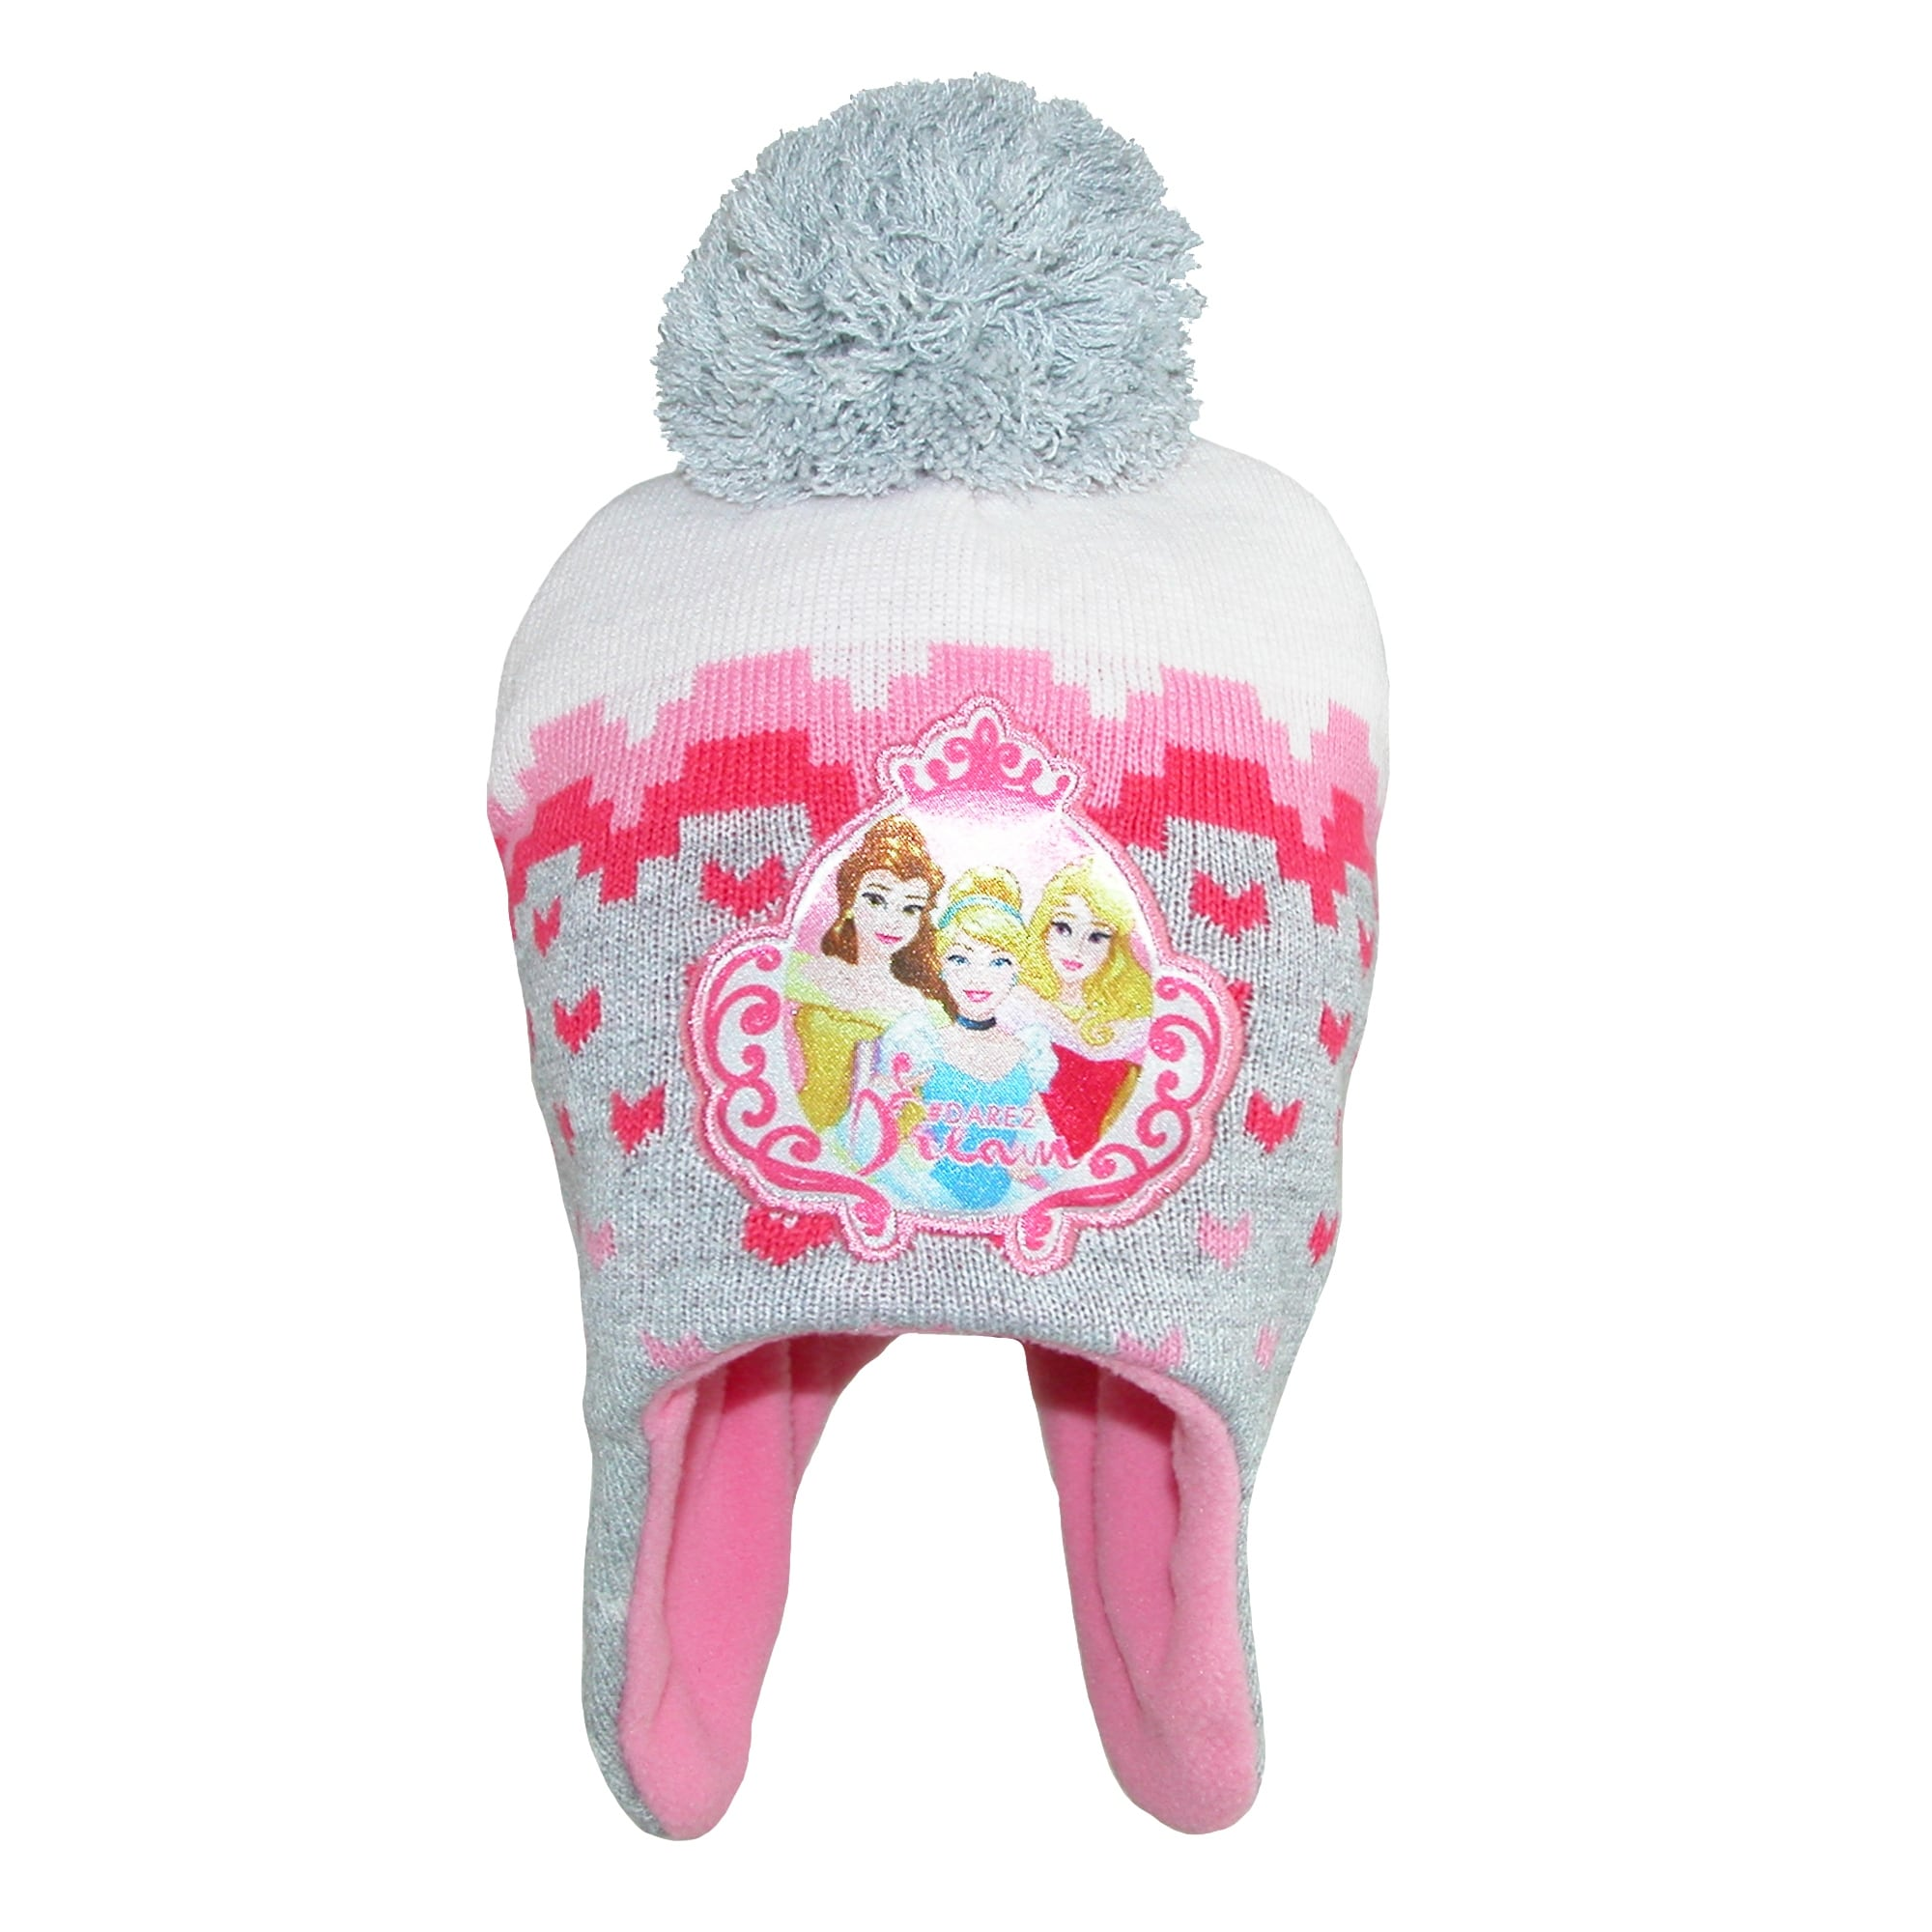 Shop Disney Infant   Toddler s Princess Hat and Mitten Winter Set - Free  Shipping On Orders Over  45 - Overstock.com - 17904752 8cdb22acd33